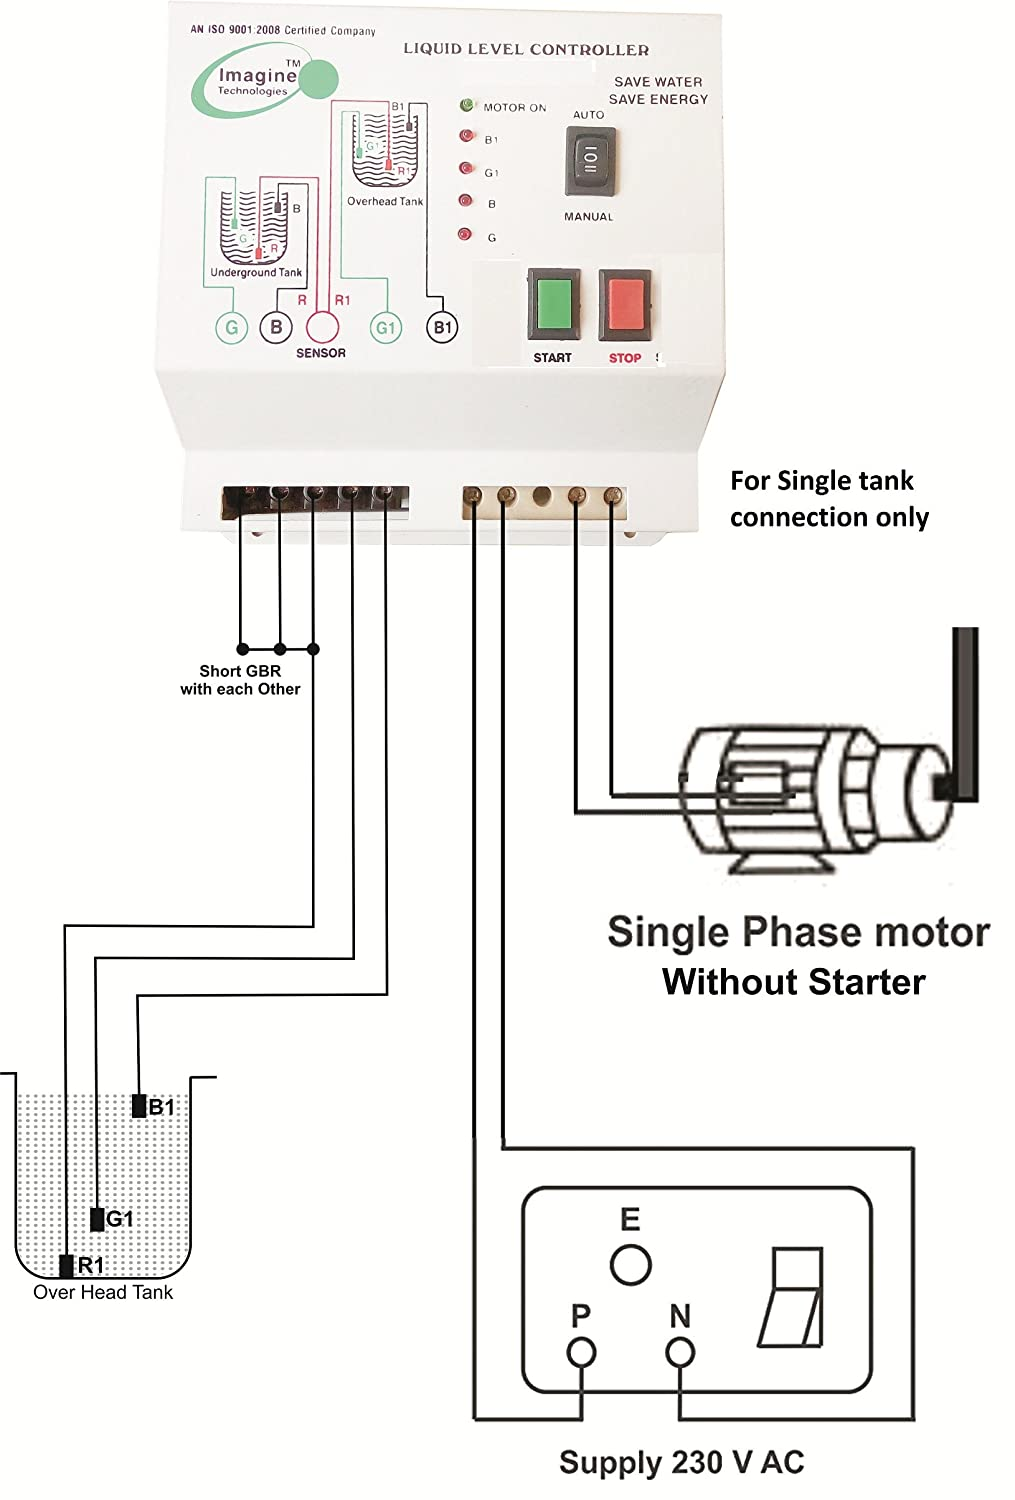 81H5ilD4wxL._SL1500_ fully automatic water level controller with up and down tank ellico water level controller wiring diagram at panicattacktreatment.co